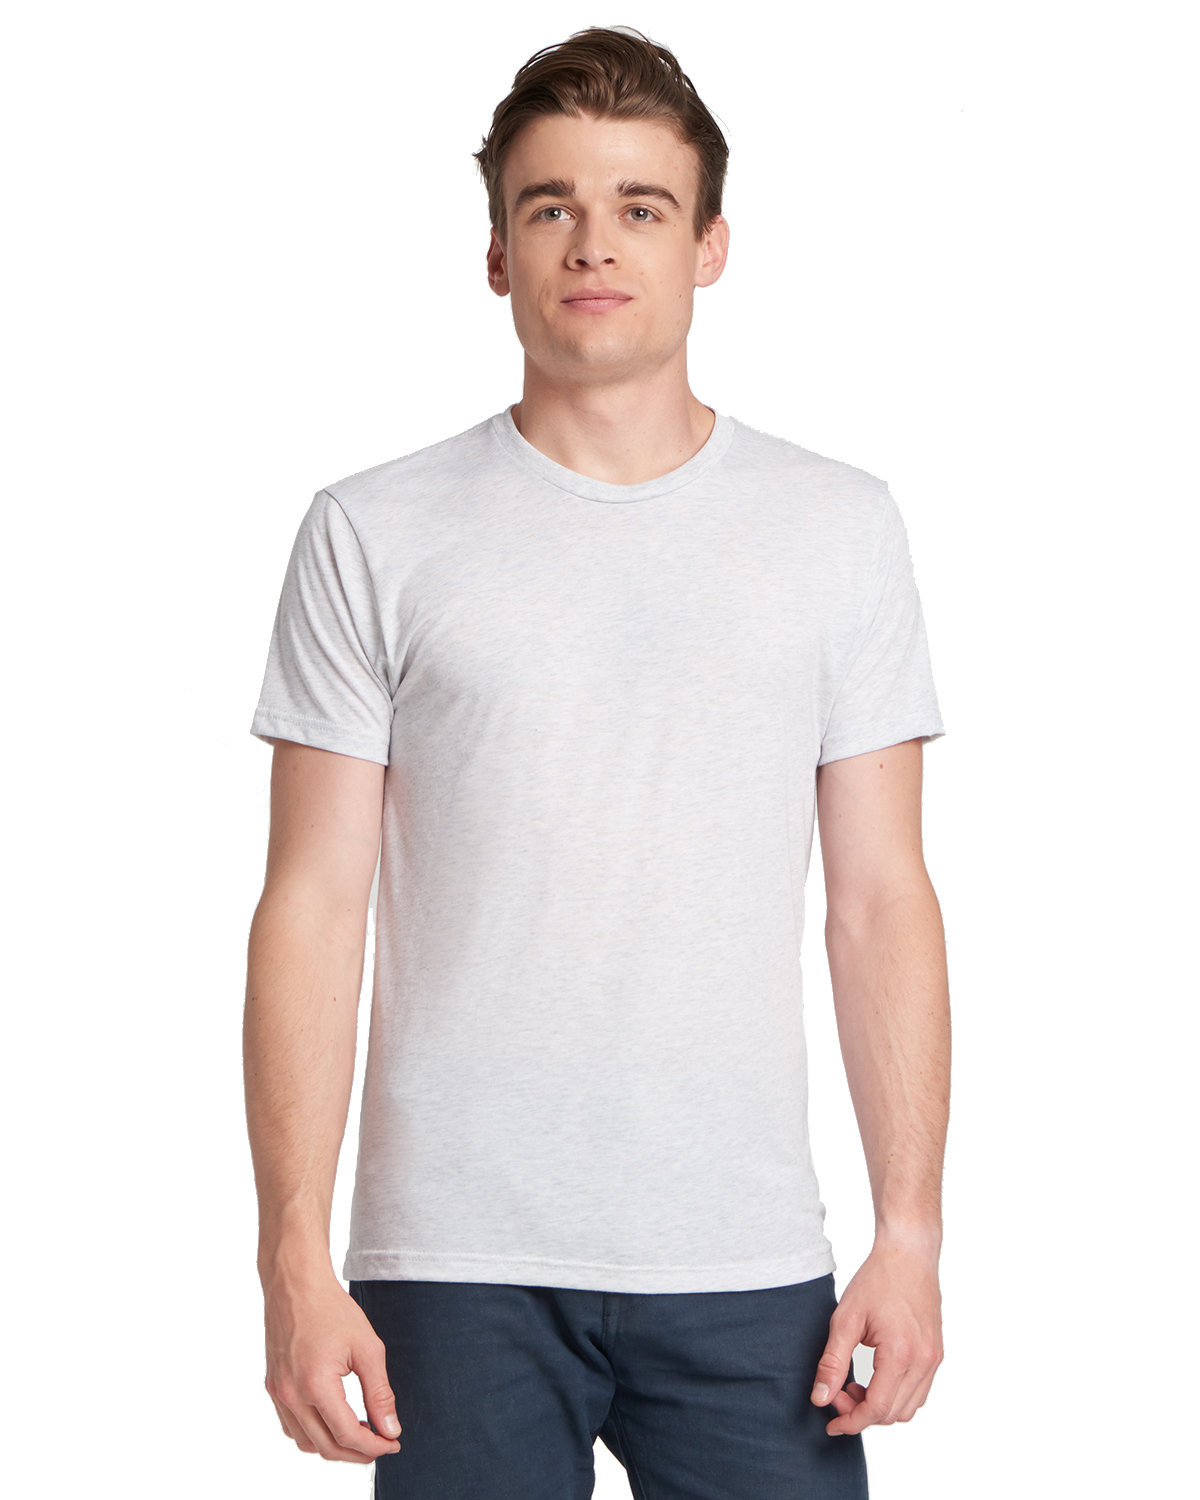 Next Level Men's Made in USA Triblend T-Shirt HEATHER WHITE